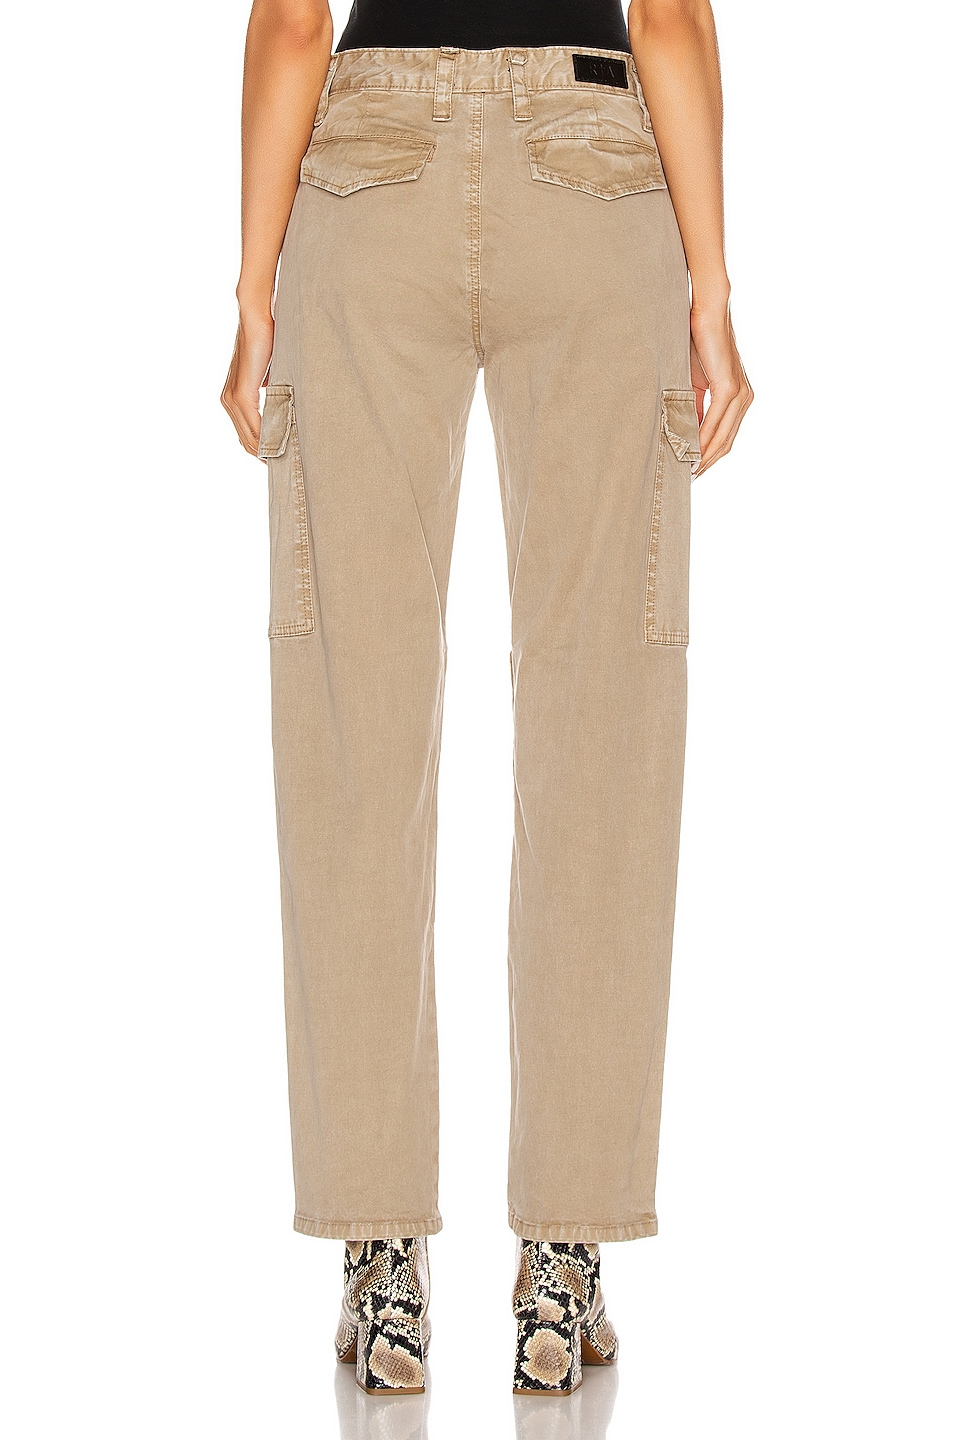 Image 3 of RtA Sallinger Pant in Coyote